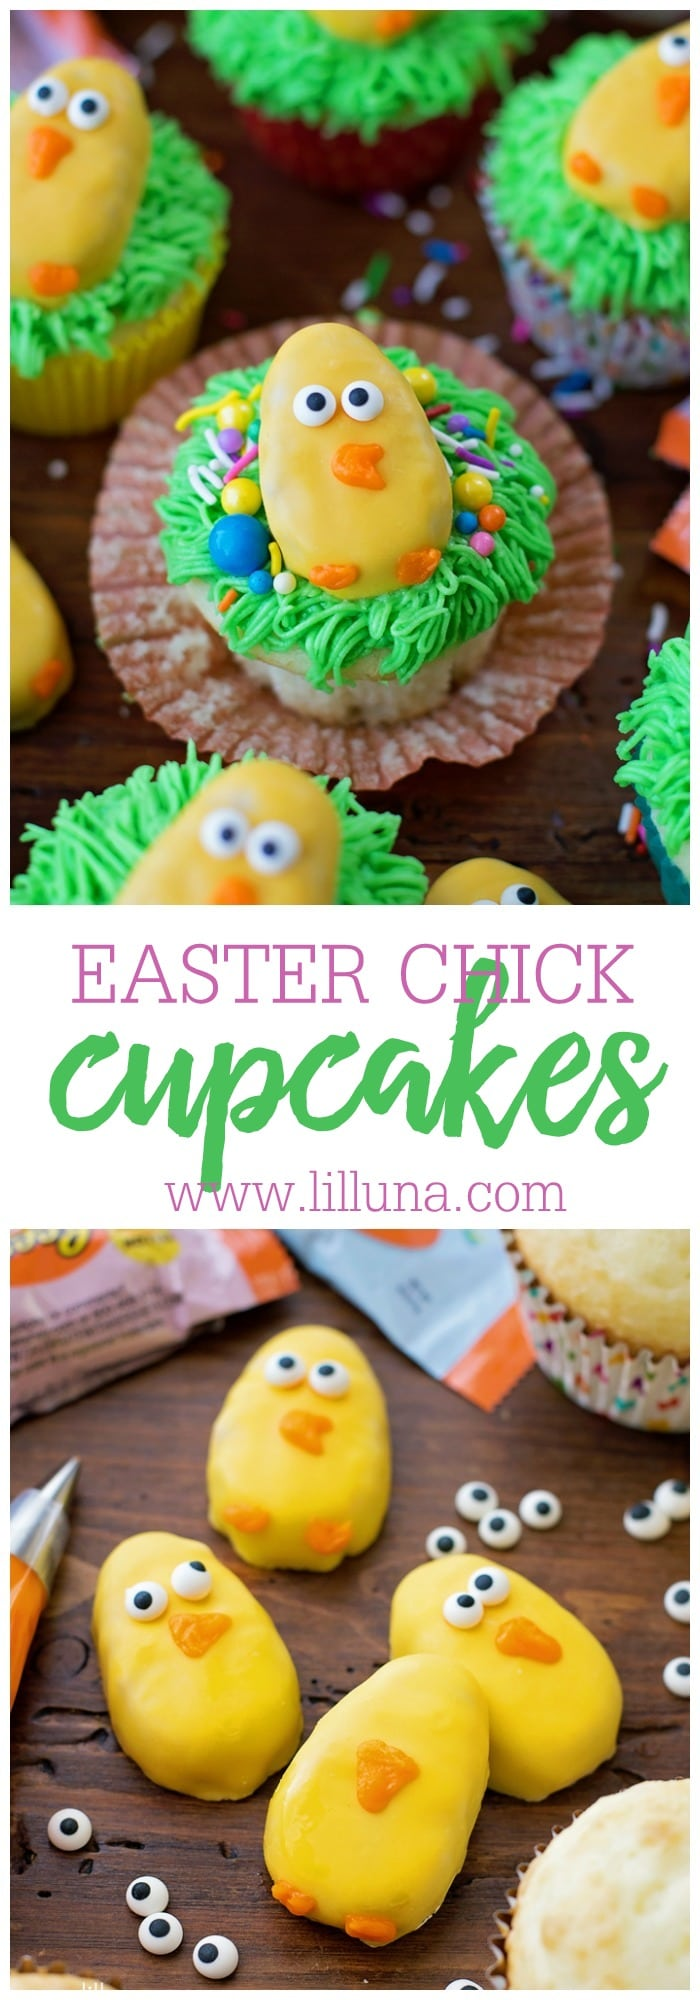 Easter Chicken Cupcakes - the cutest and most simple Easter treat!!